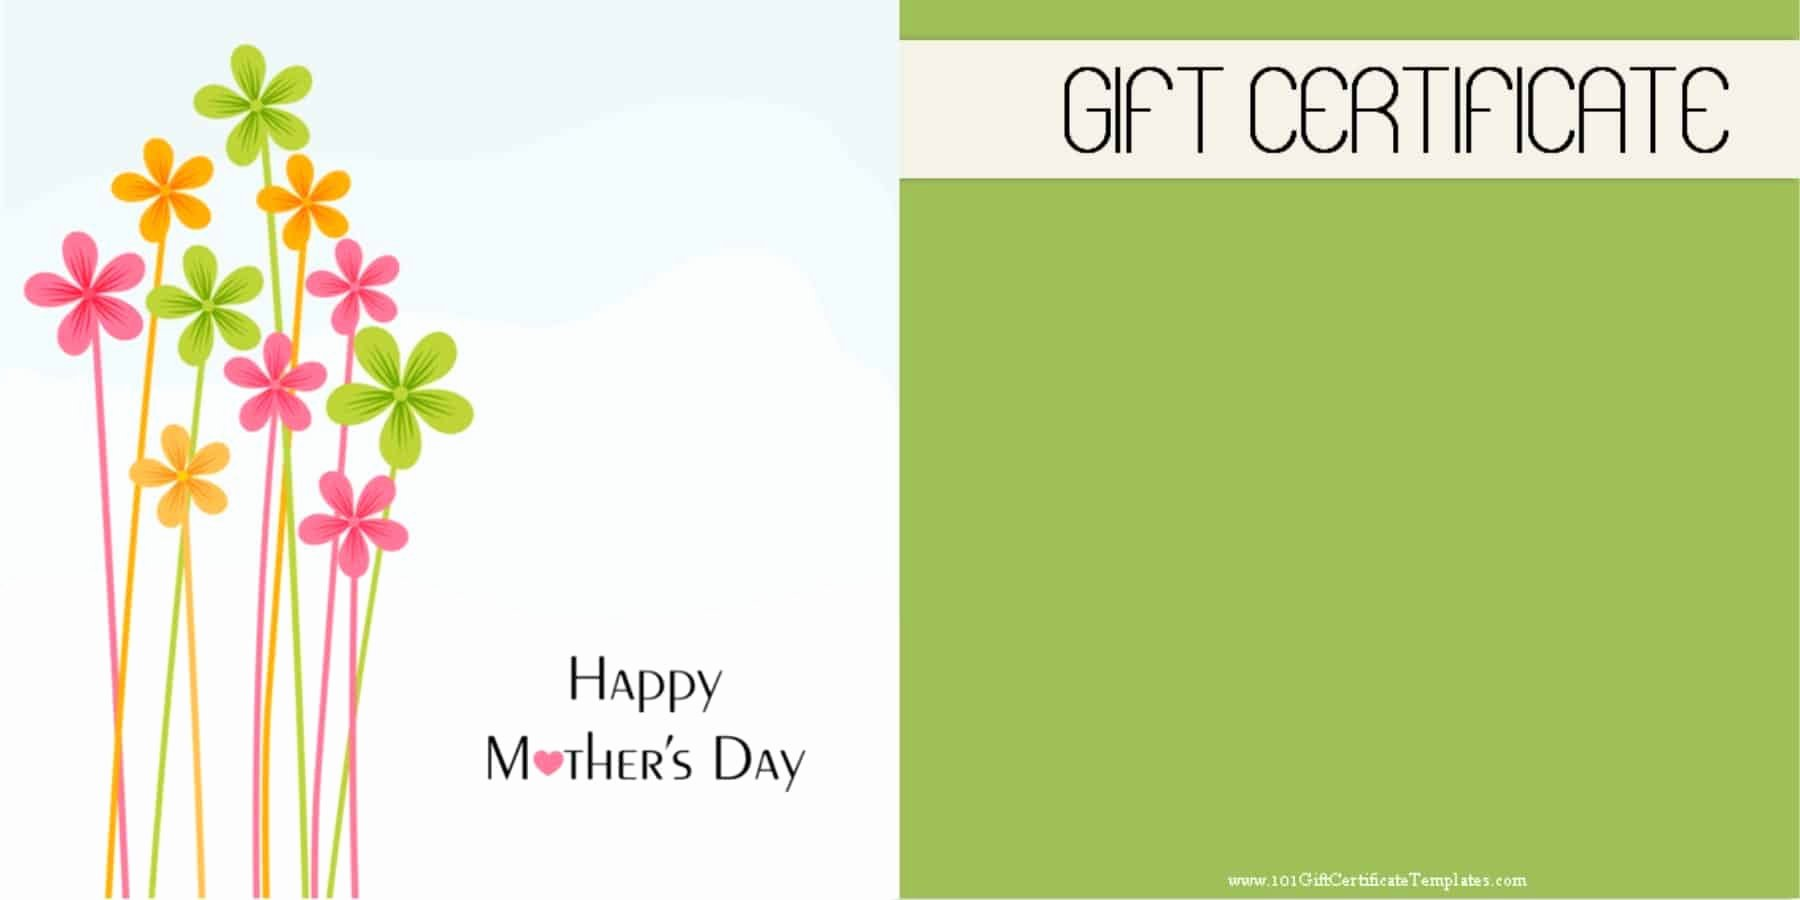 Mother's Day Gift Certificate Template Free Download New Mother S Day Gift Certificate Templates